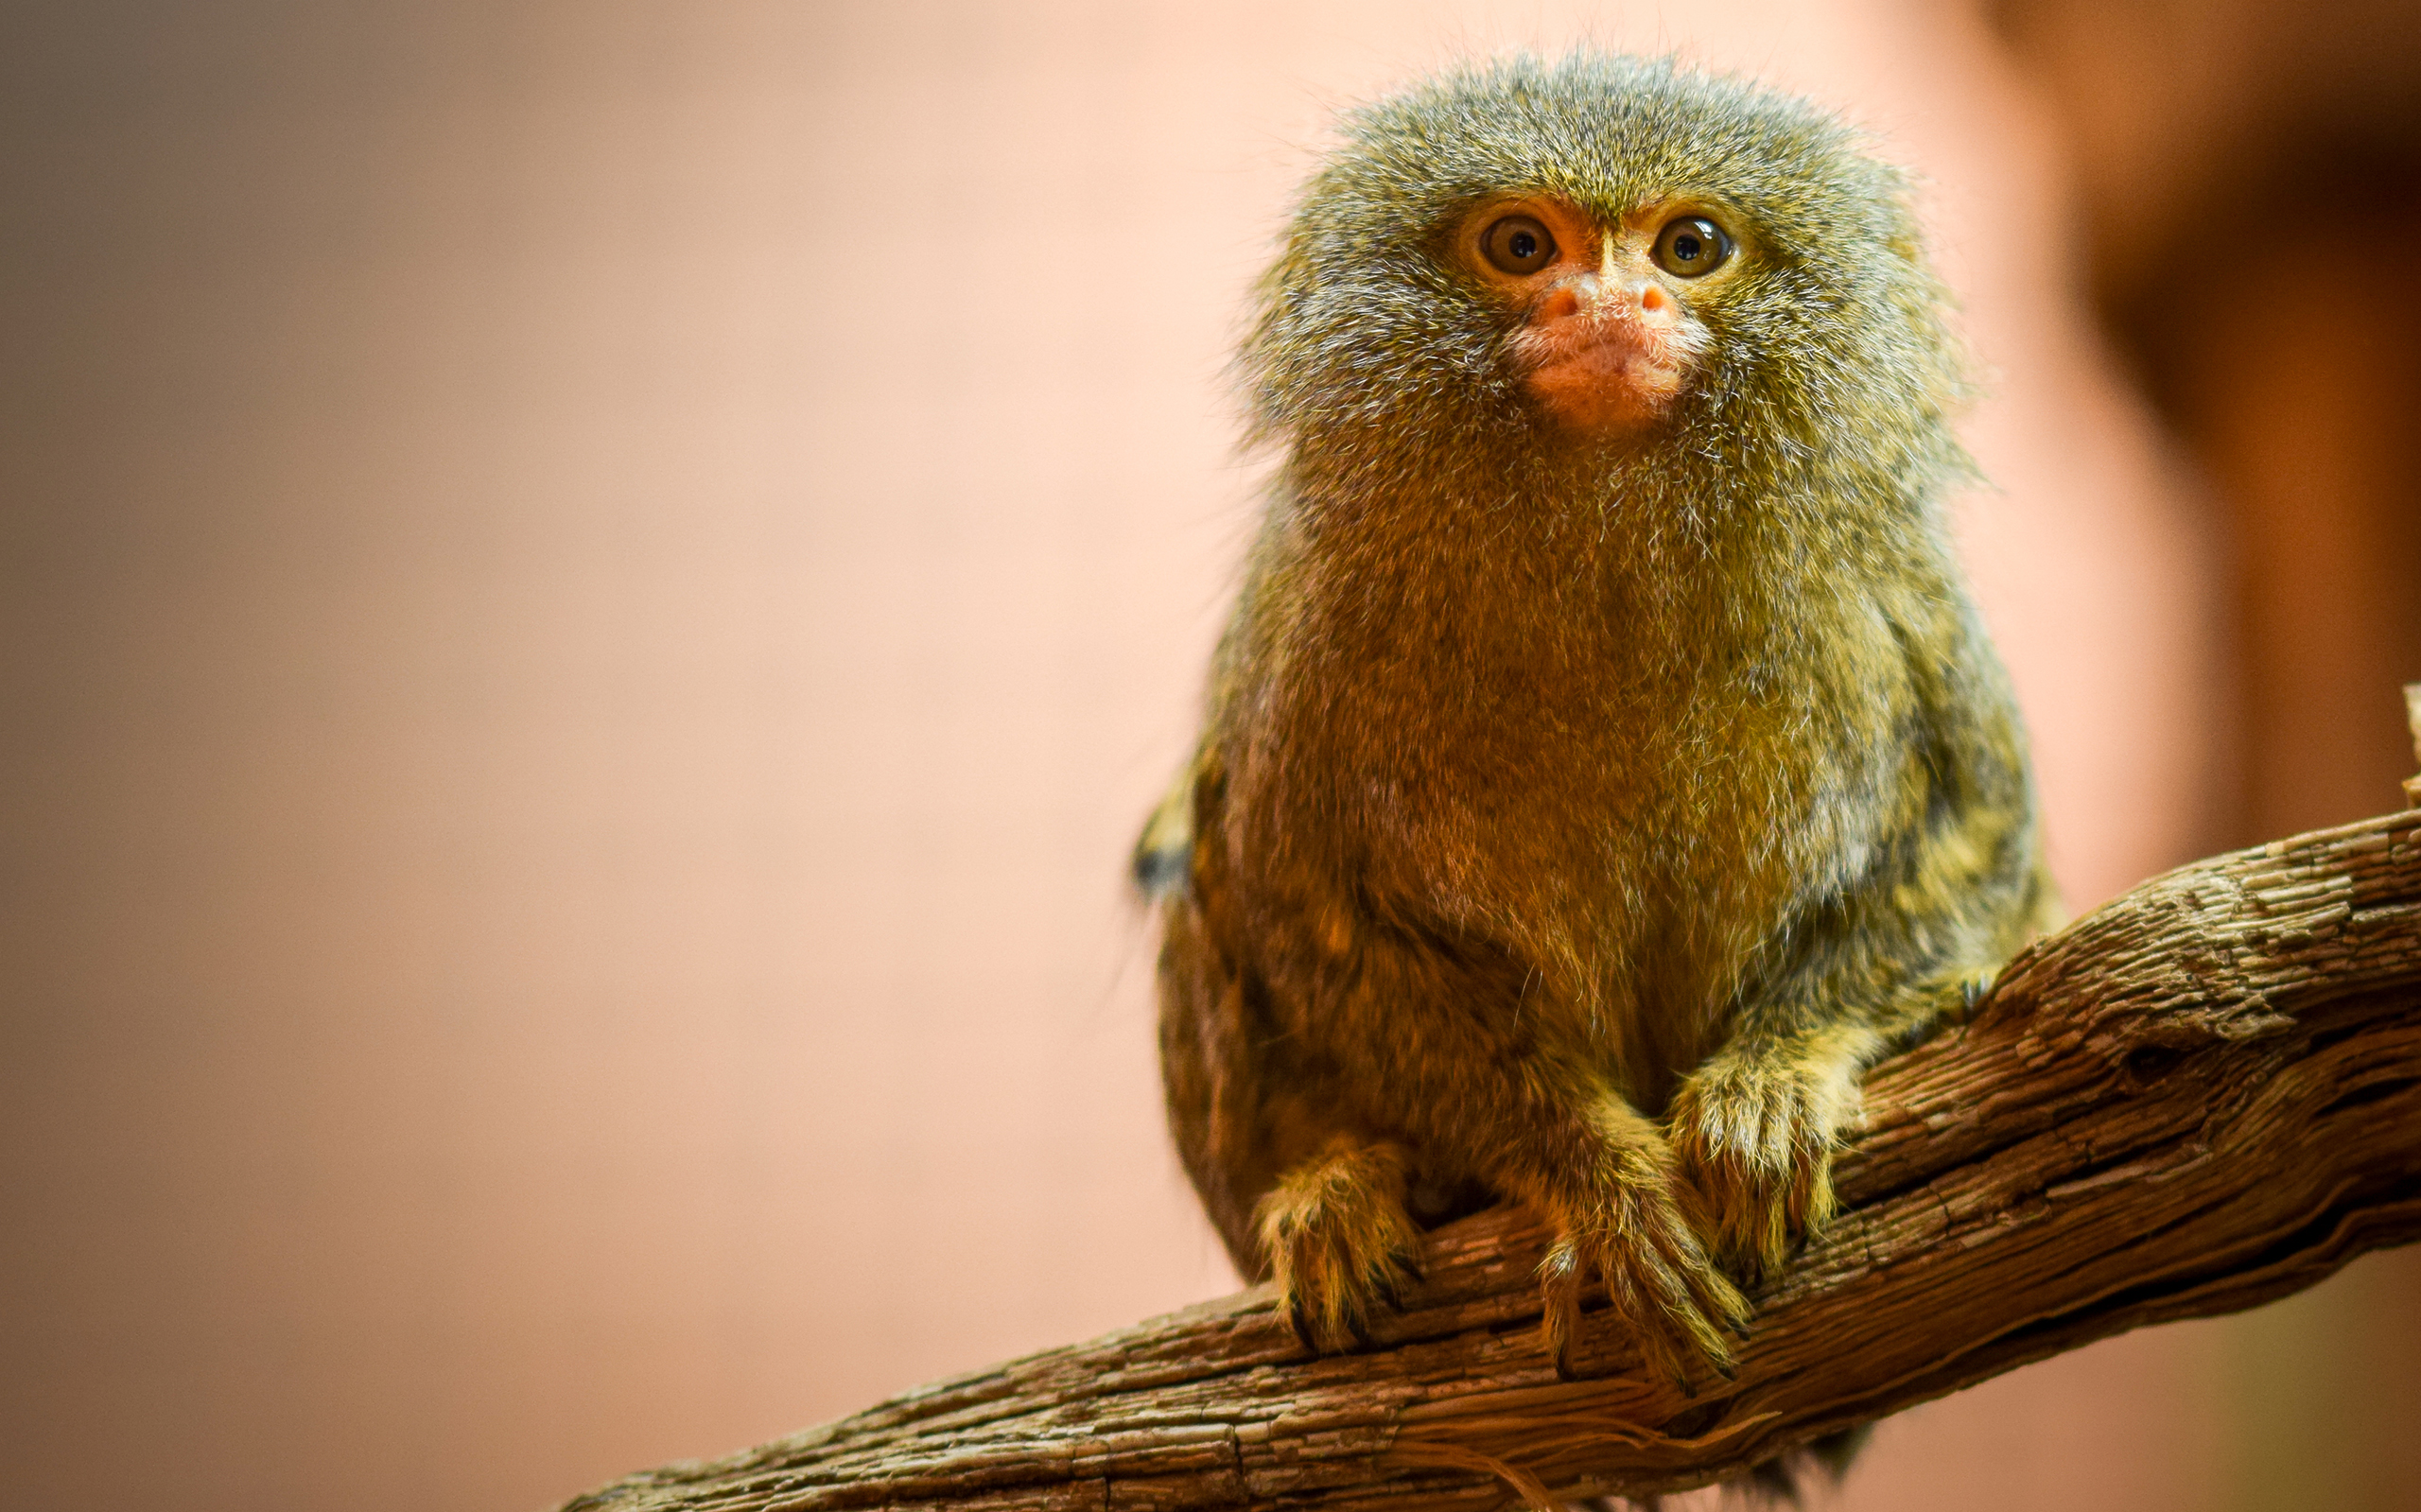 Cute Monkey Wallpapers For Mobile Pygmy Marmoset Hd Wallpaper Background Image 2560x1599